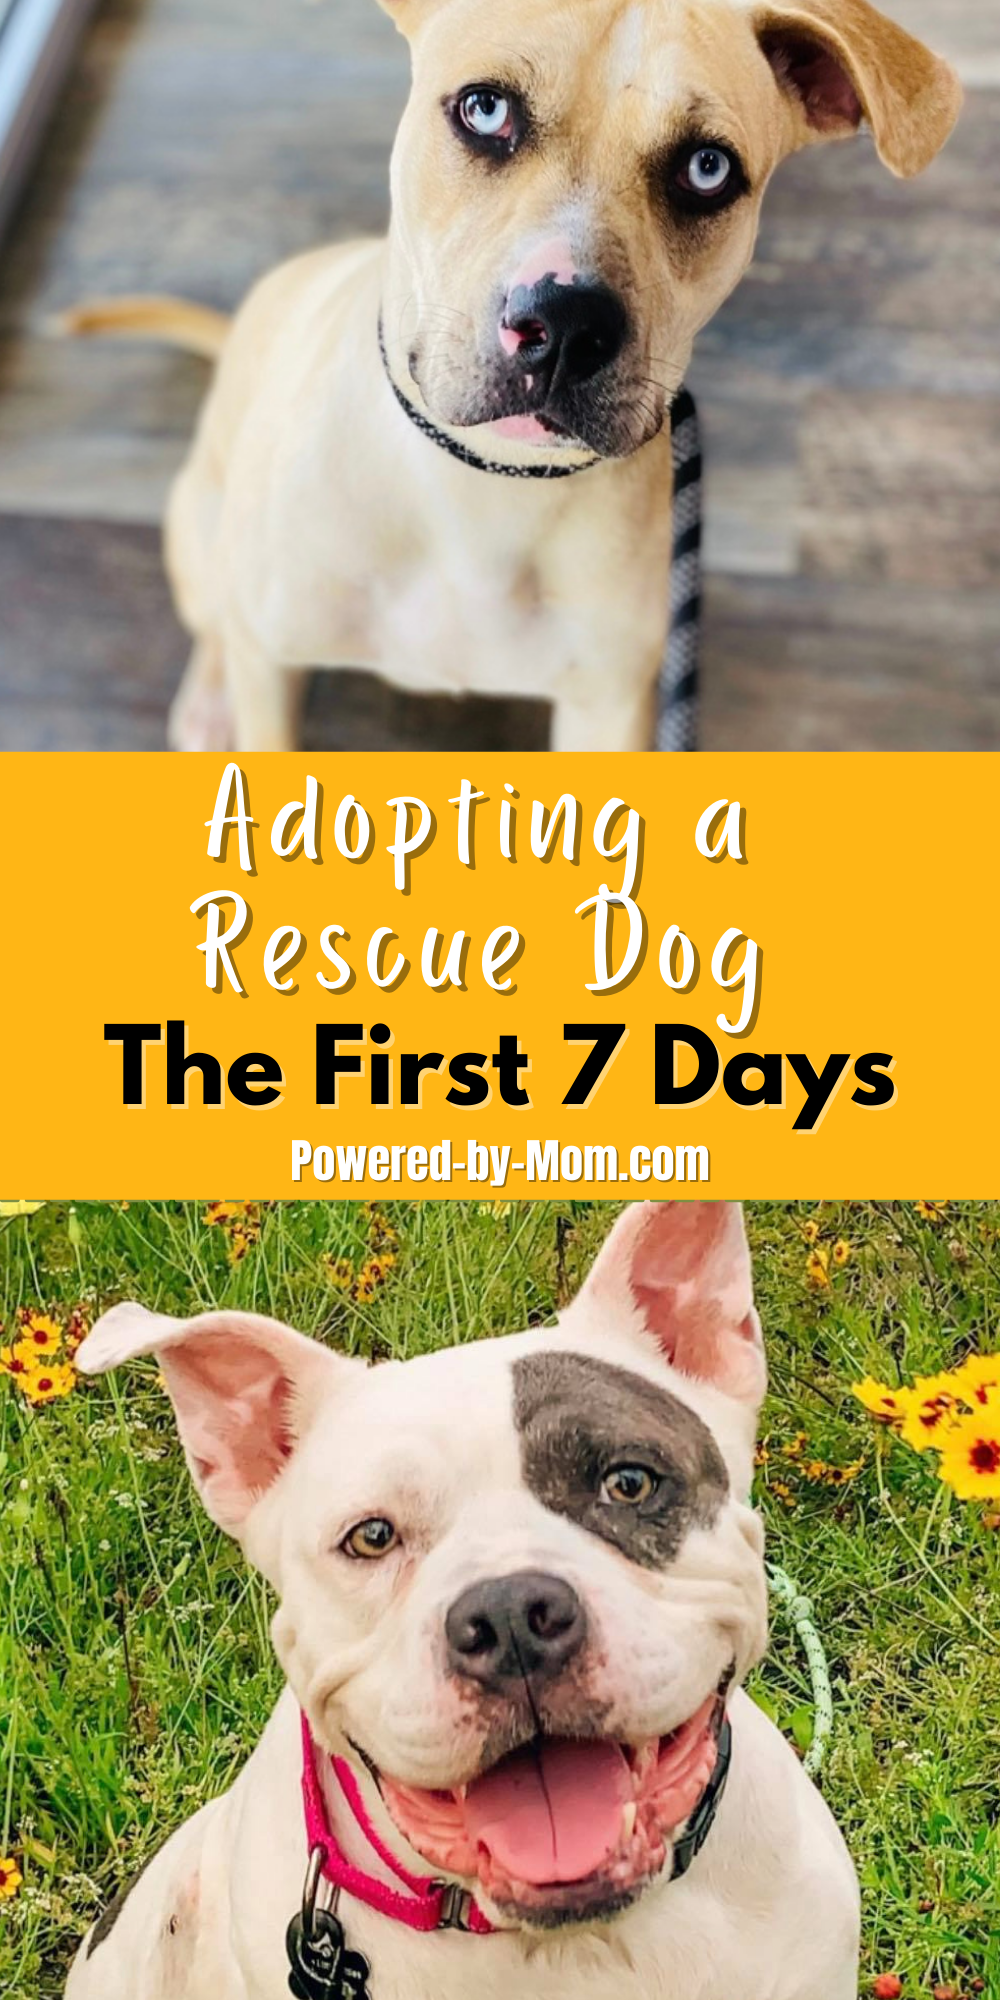 If you are adopting a rescue dog, the first seven days are a crucial time for both you and your dog. It will be a period of adjustment.